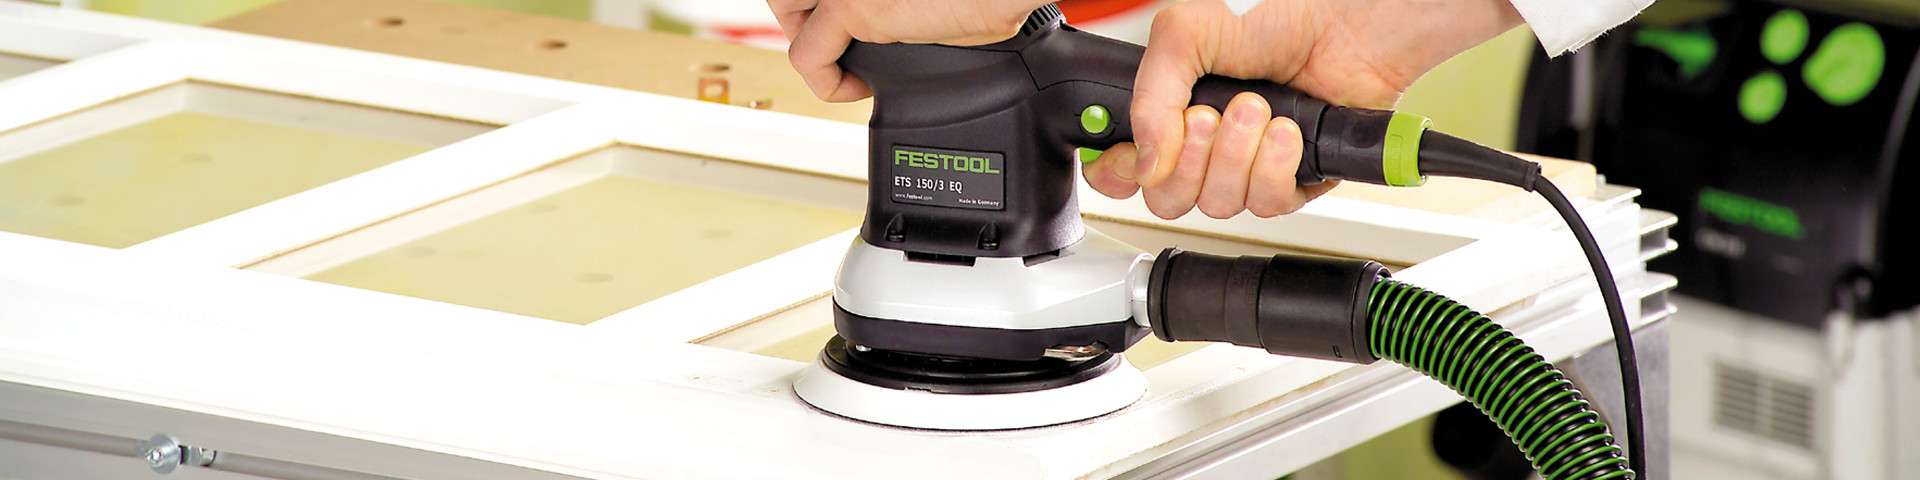 Sanding Hardwood Floors with An orbital Sander Of Festool Ets 150 5 E Random orbital Sander with Regard to Make Light Work Of Sanding